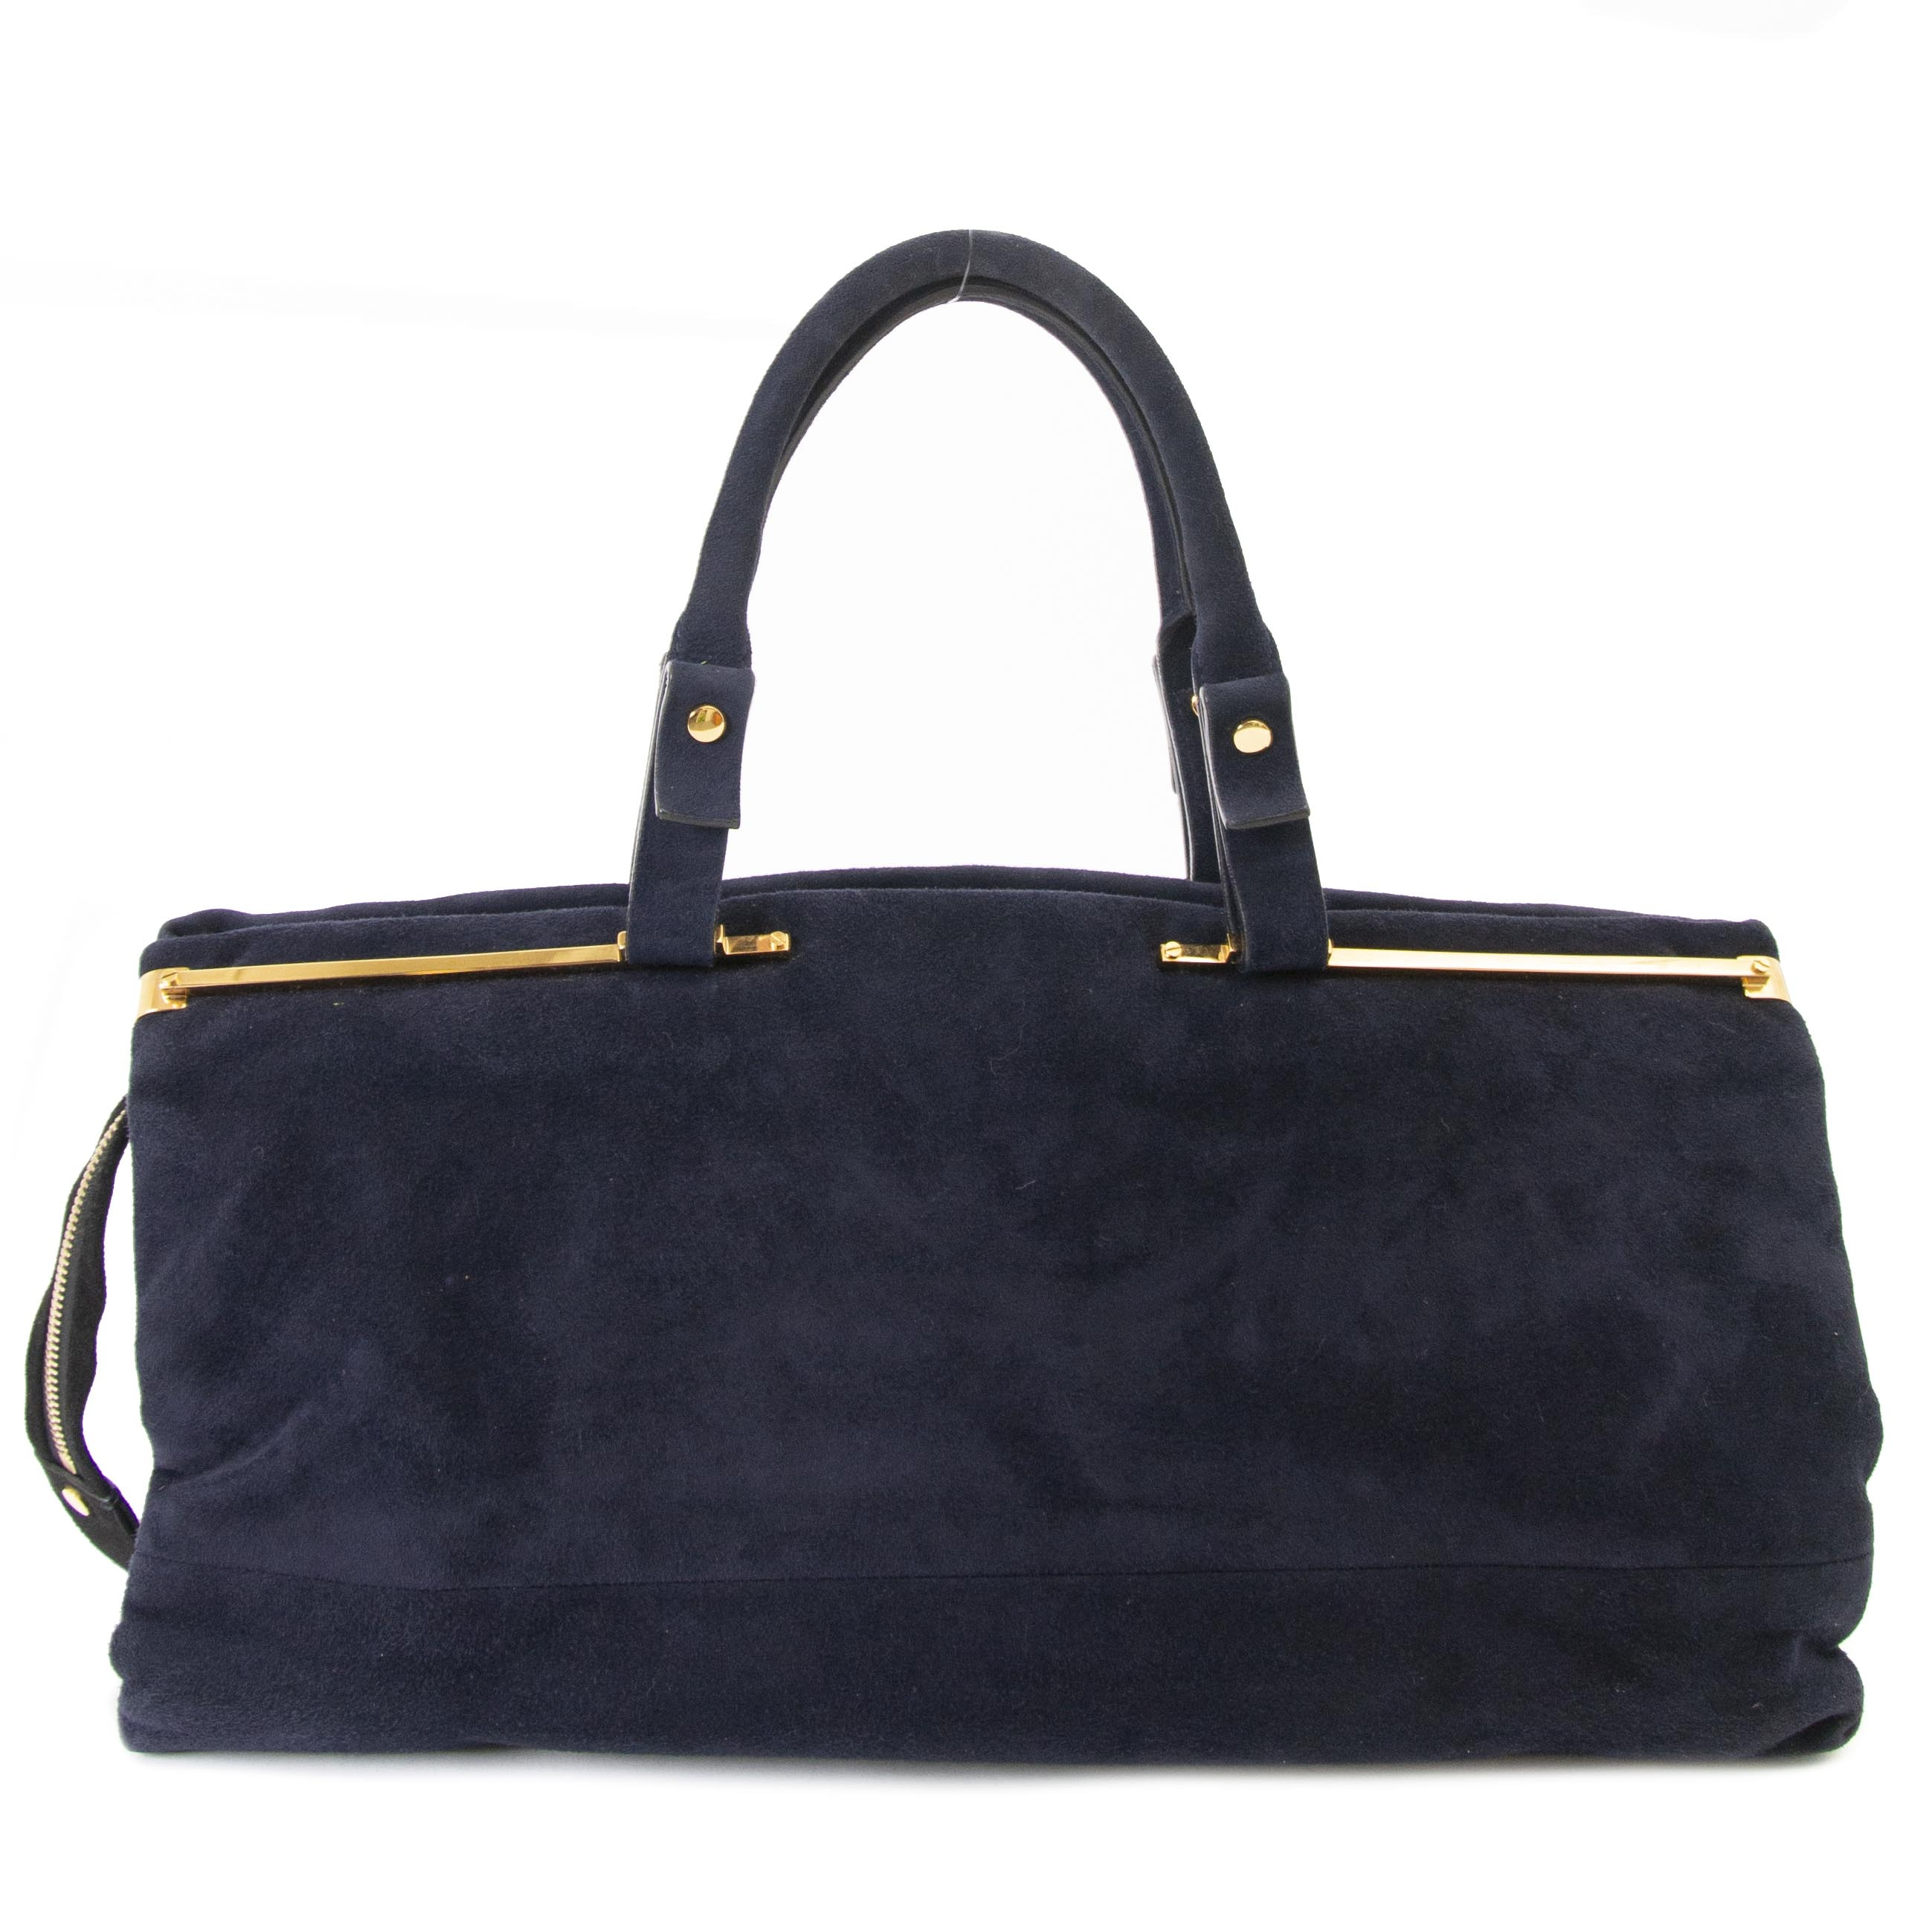 63808d9c3bb1 ... buy Lanvin Dark Blue Suede Handbag at labellov for the best price